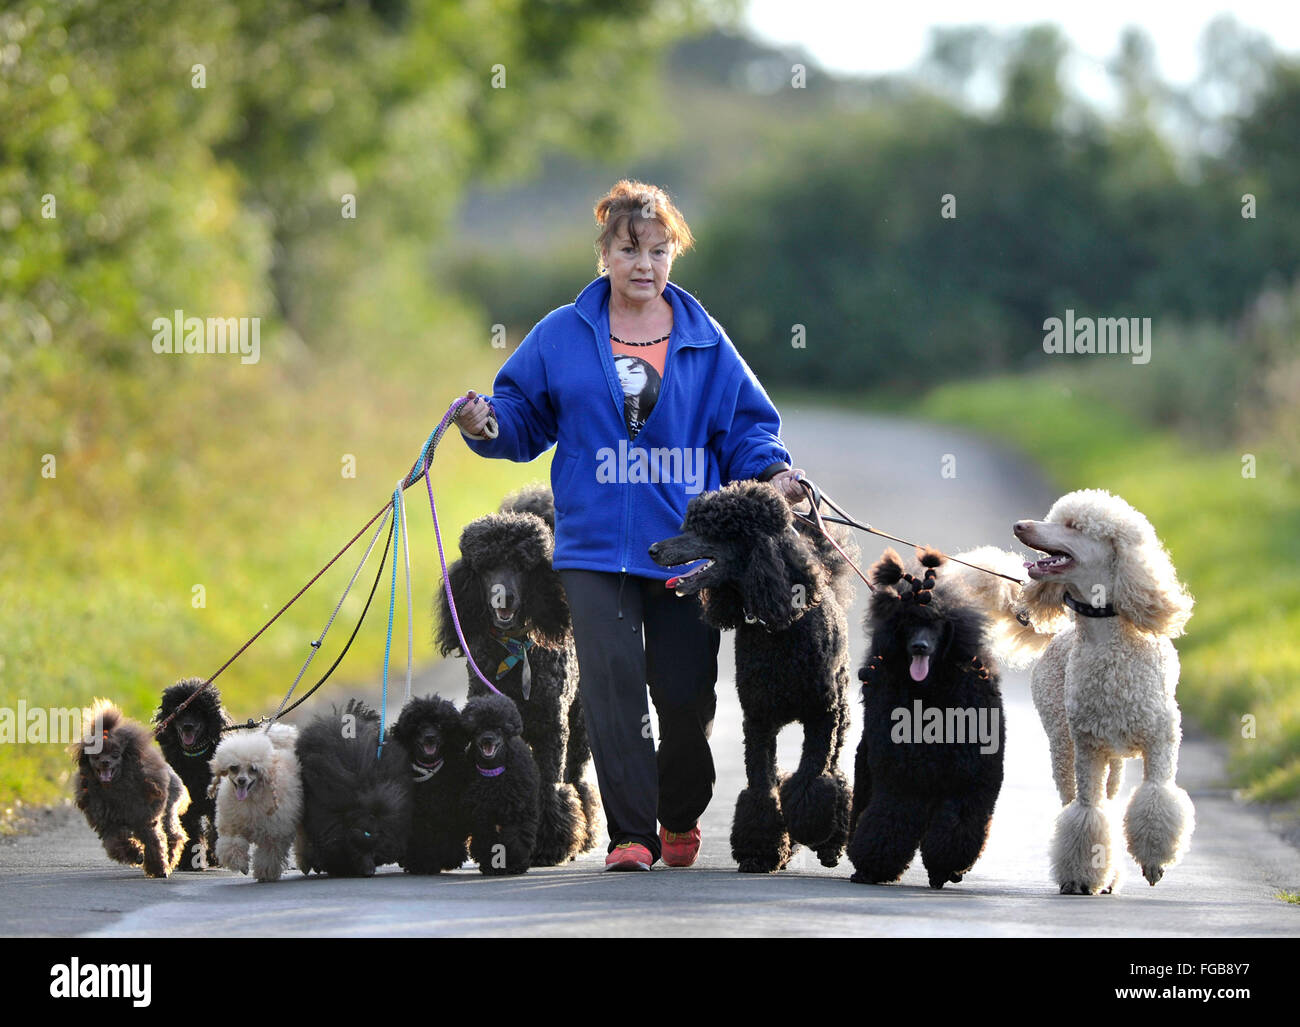 27th  August 2014, Wendy Grady walking her Giant Poodle dogs and pups on a country lane, near Broxburn, West Lothian, - Stock Image